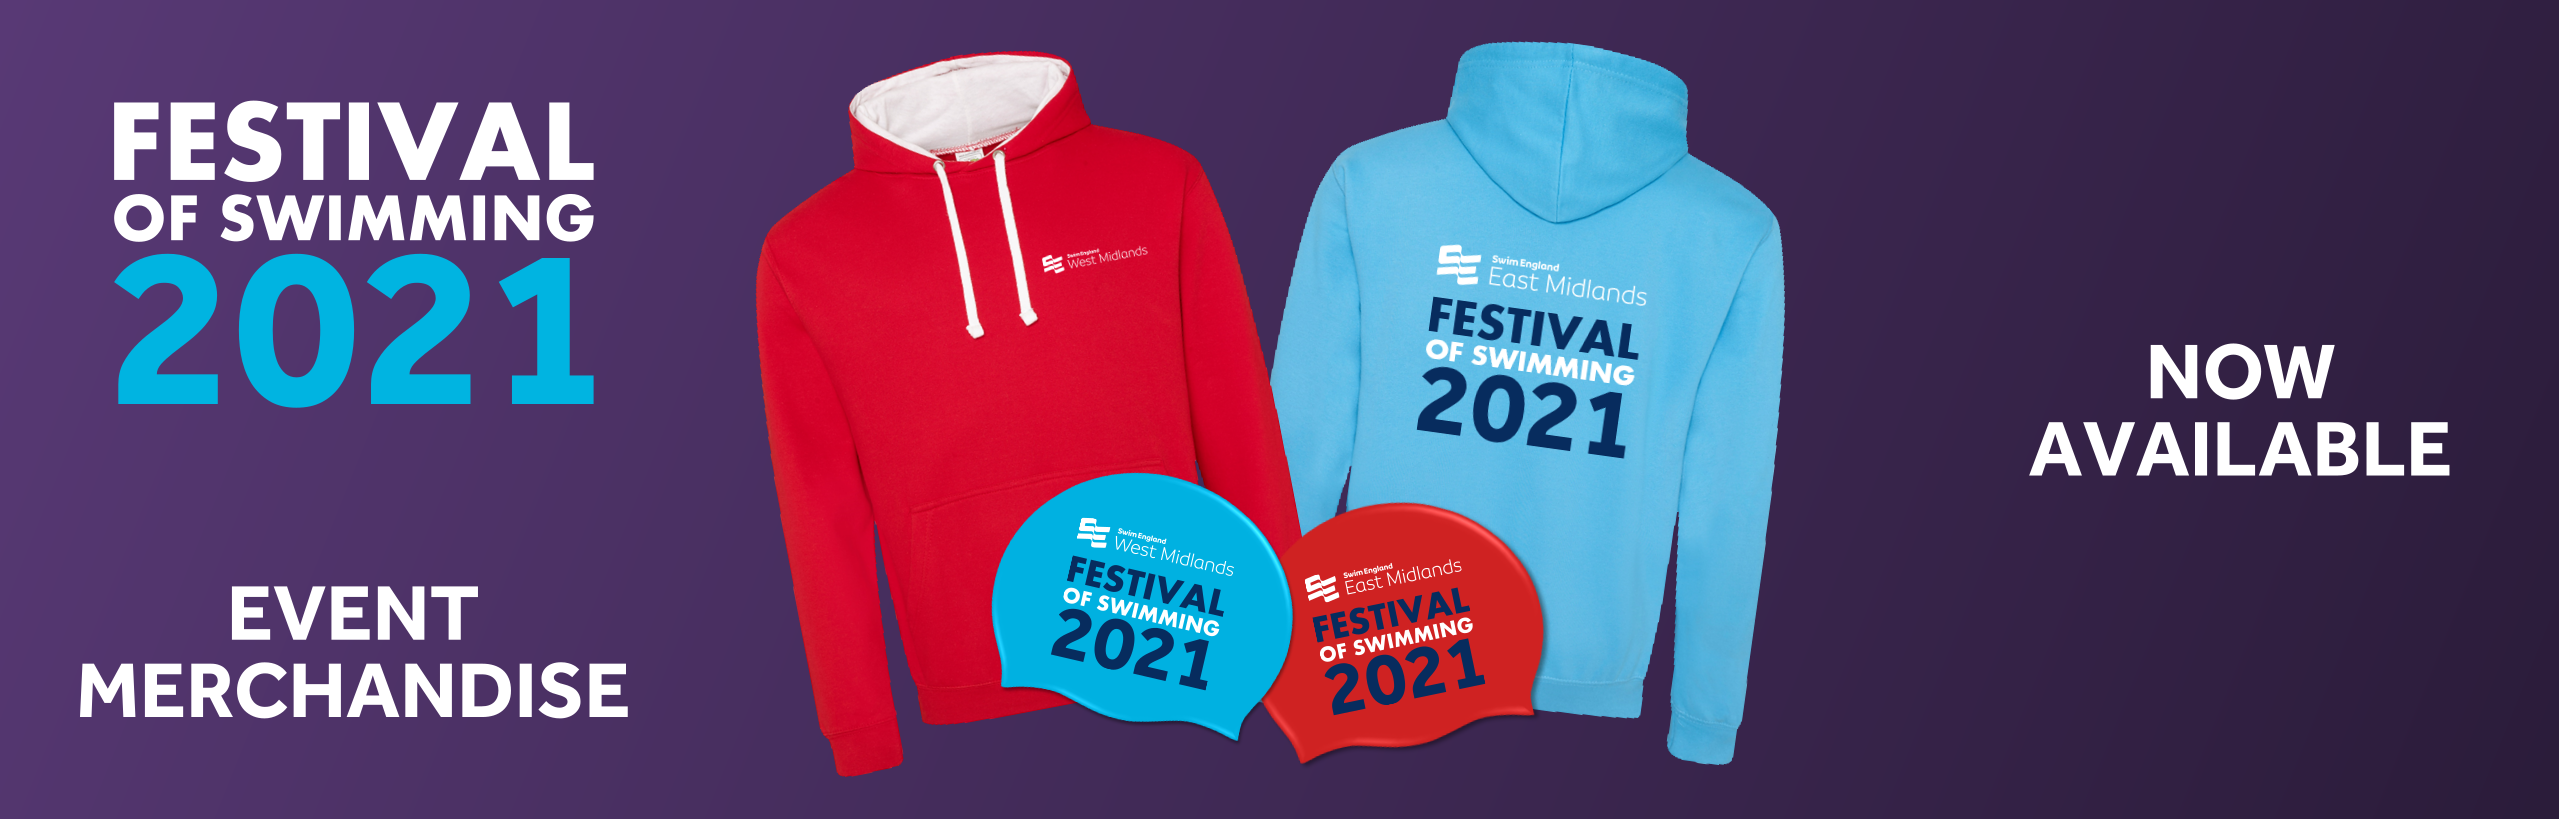 Festival of Swimming 2021 - Hoodies and Swimming Caps